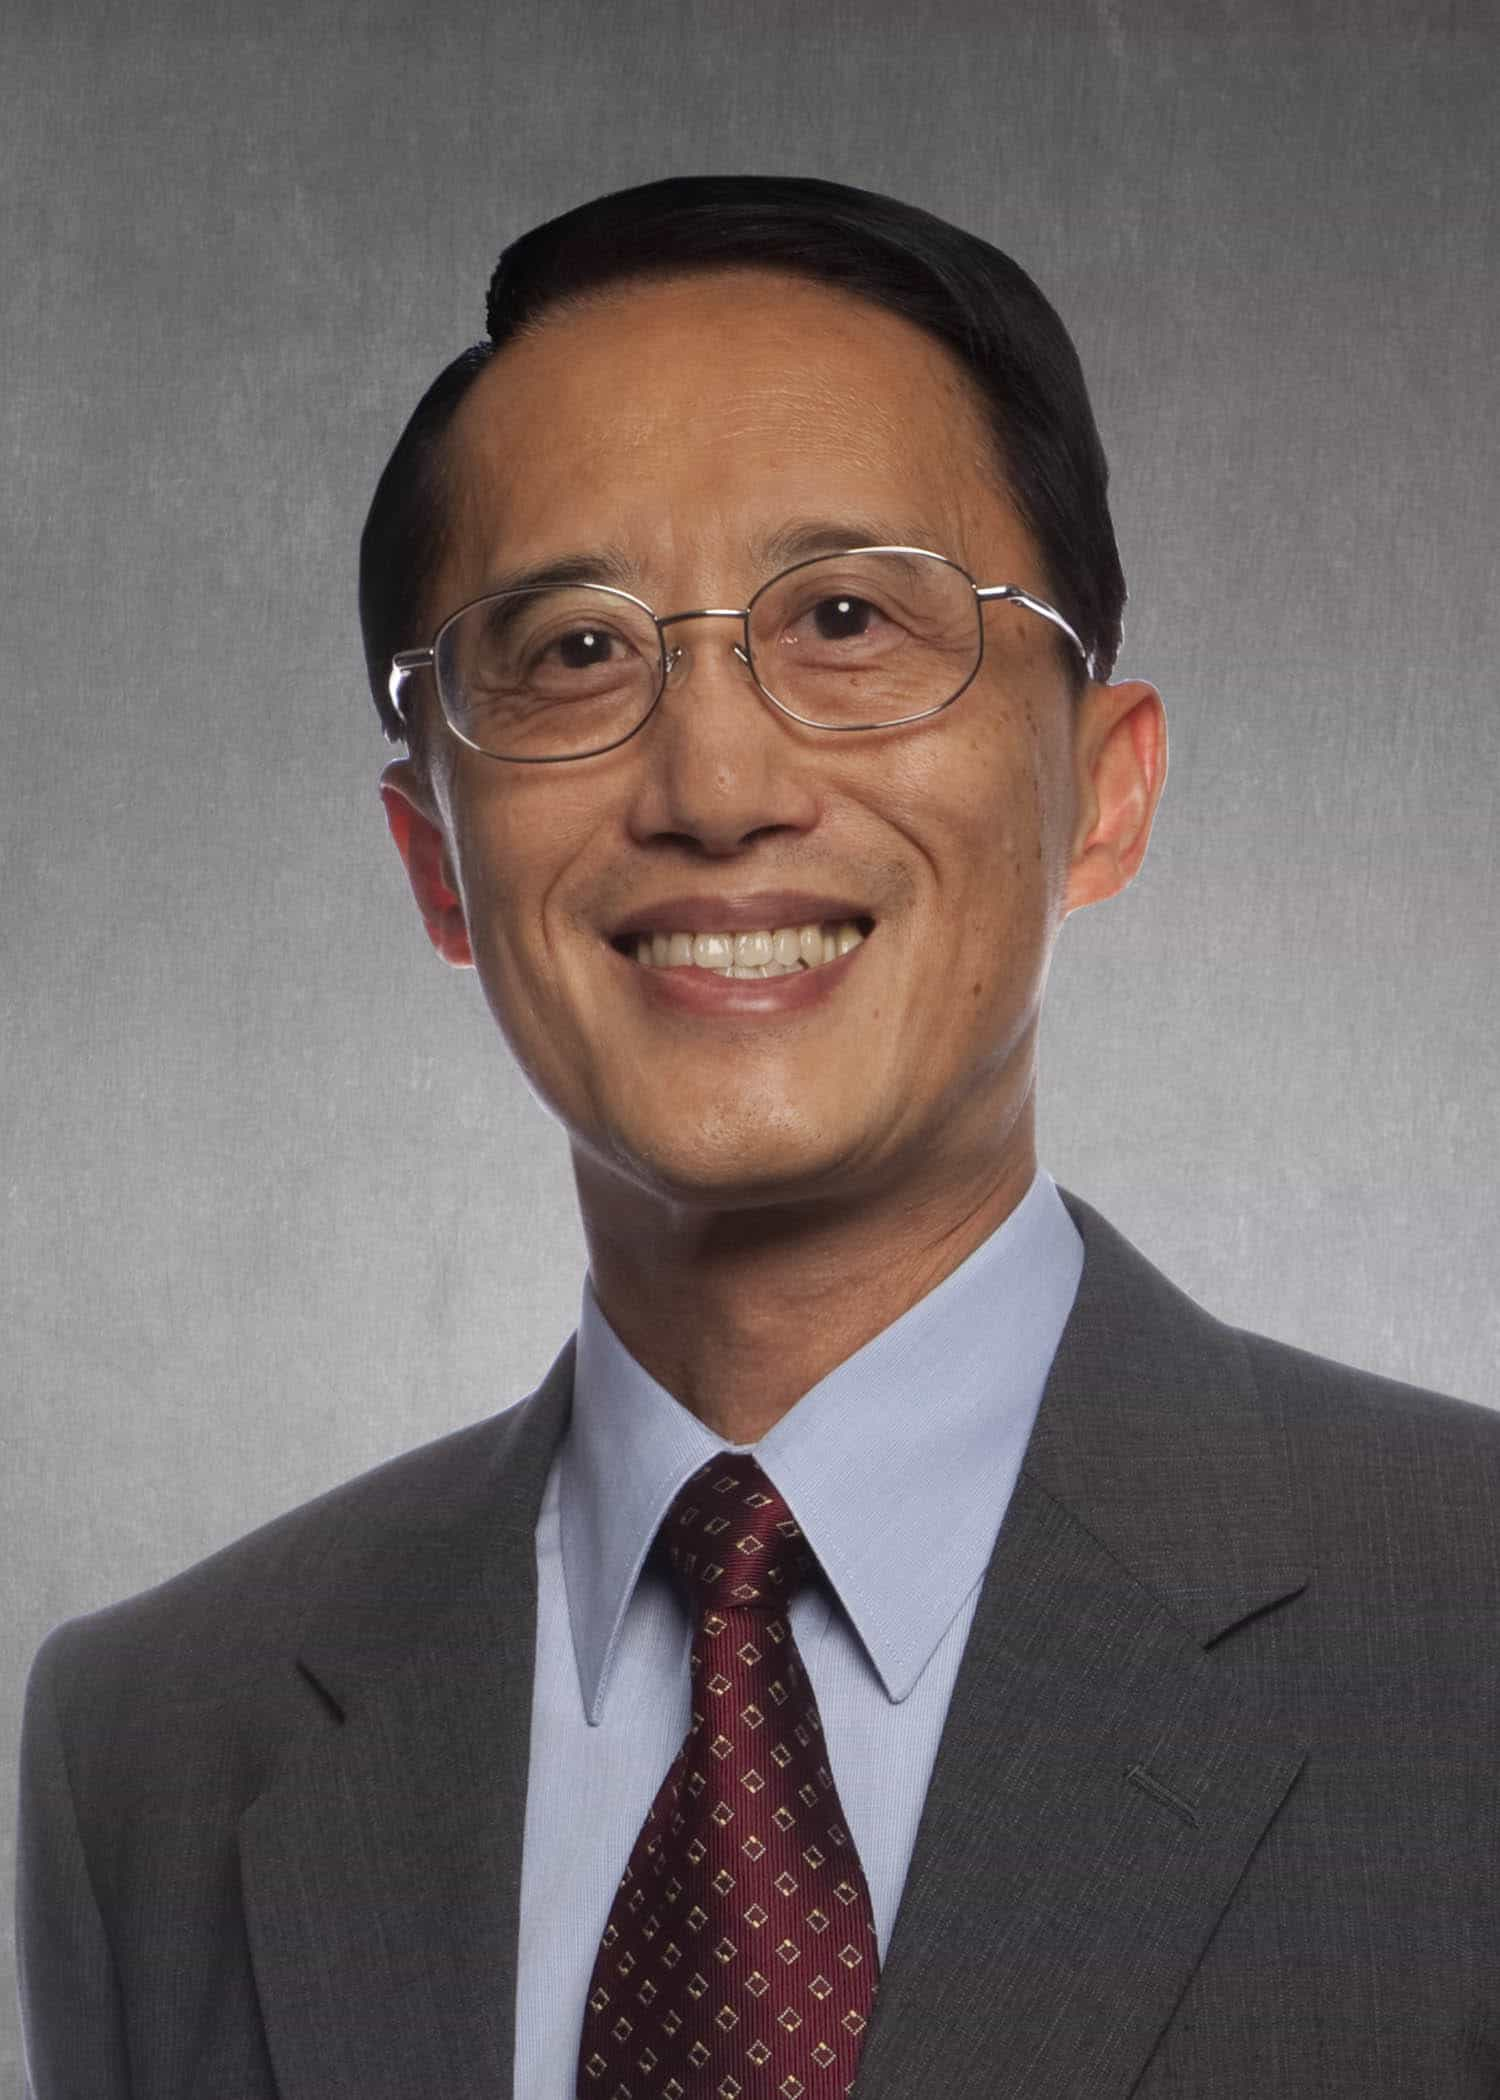 kenneth leung daniels college of business 303 871 3322 teaching assistant professor reiman school of finance